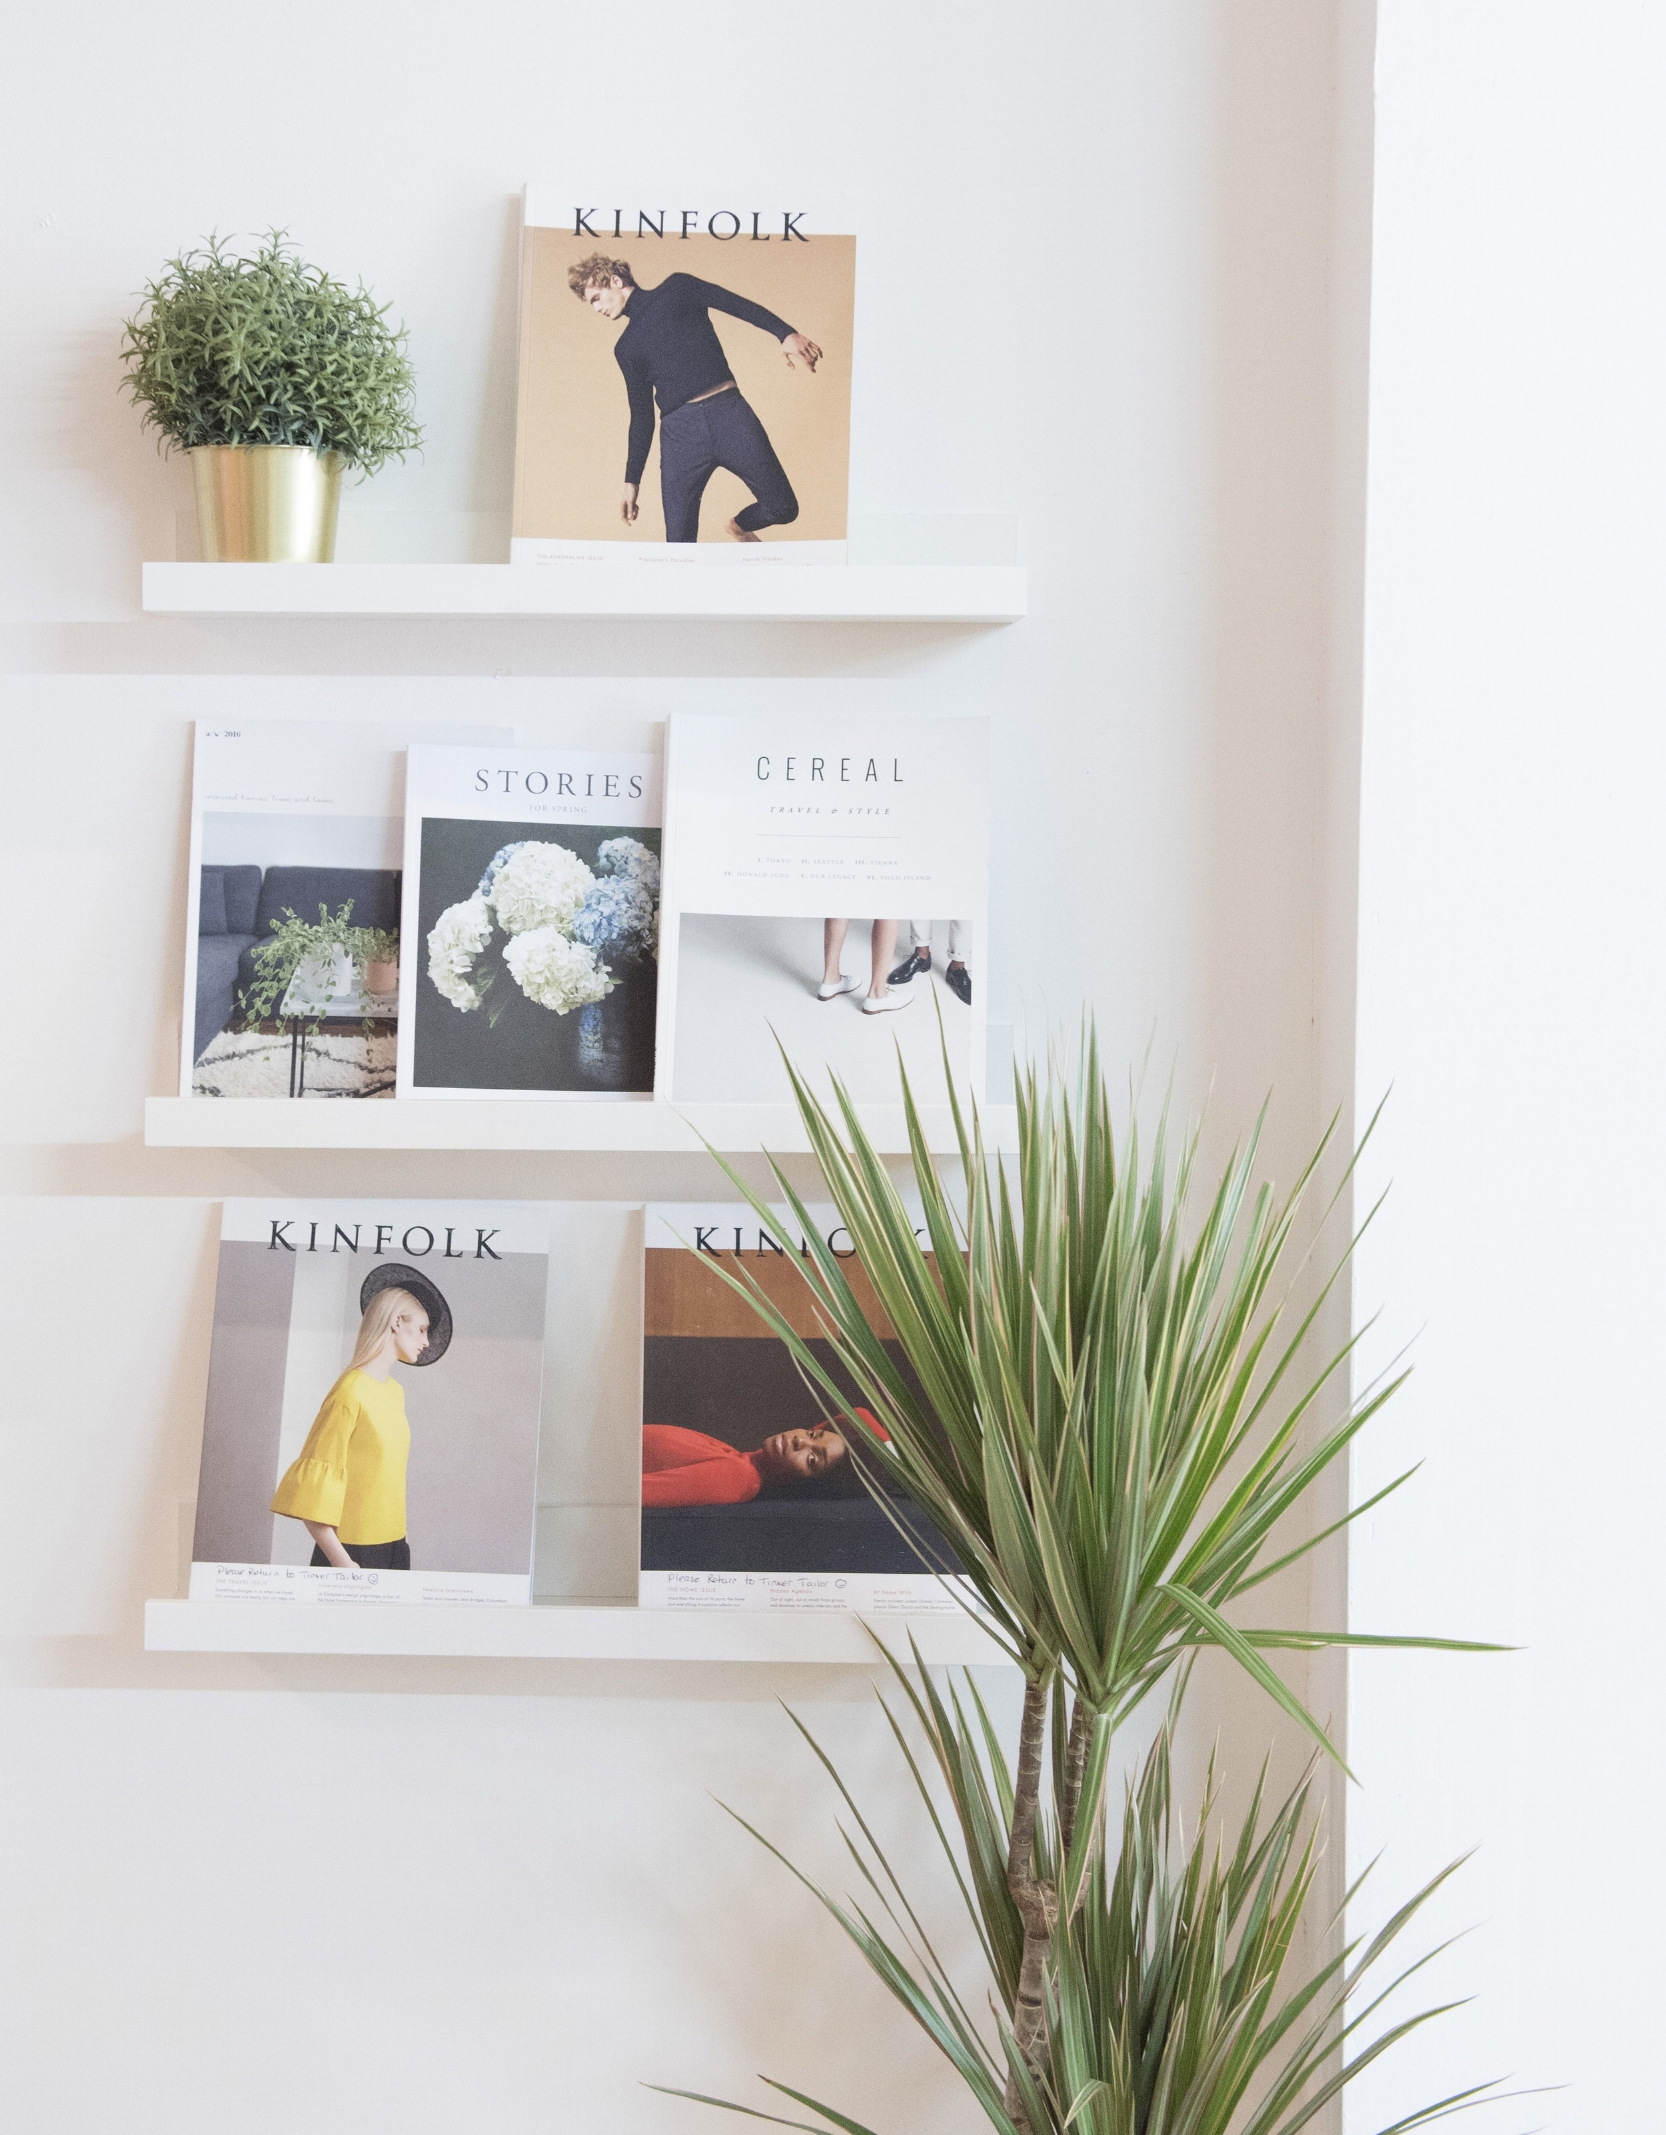 We are hoping some copies of Kinfolk from the shelves of Tinker Tailor's shop in Bush Hill Park will be making their way to our Spring fair.